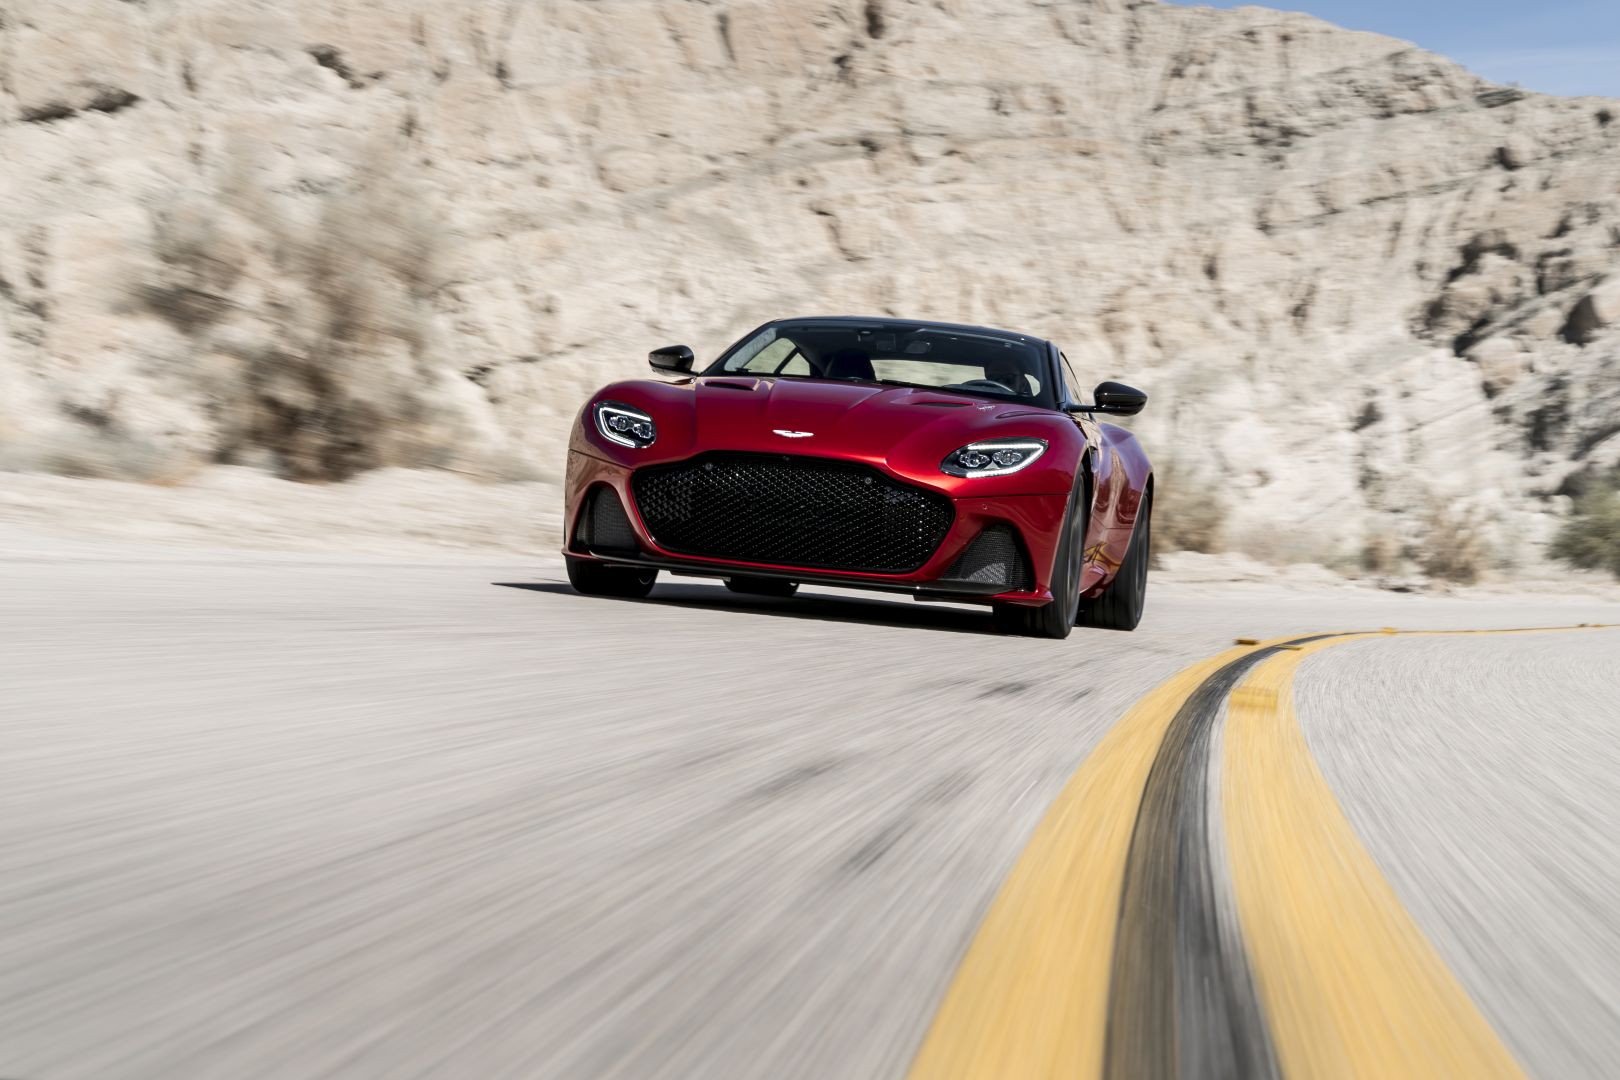 aston martin dbs superleggera specs & photos - 2018, 2019